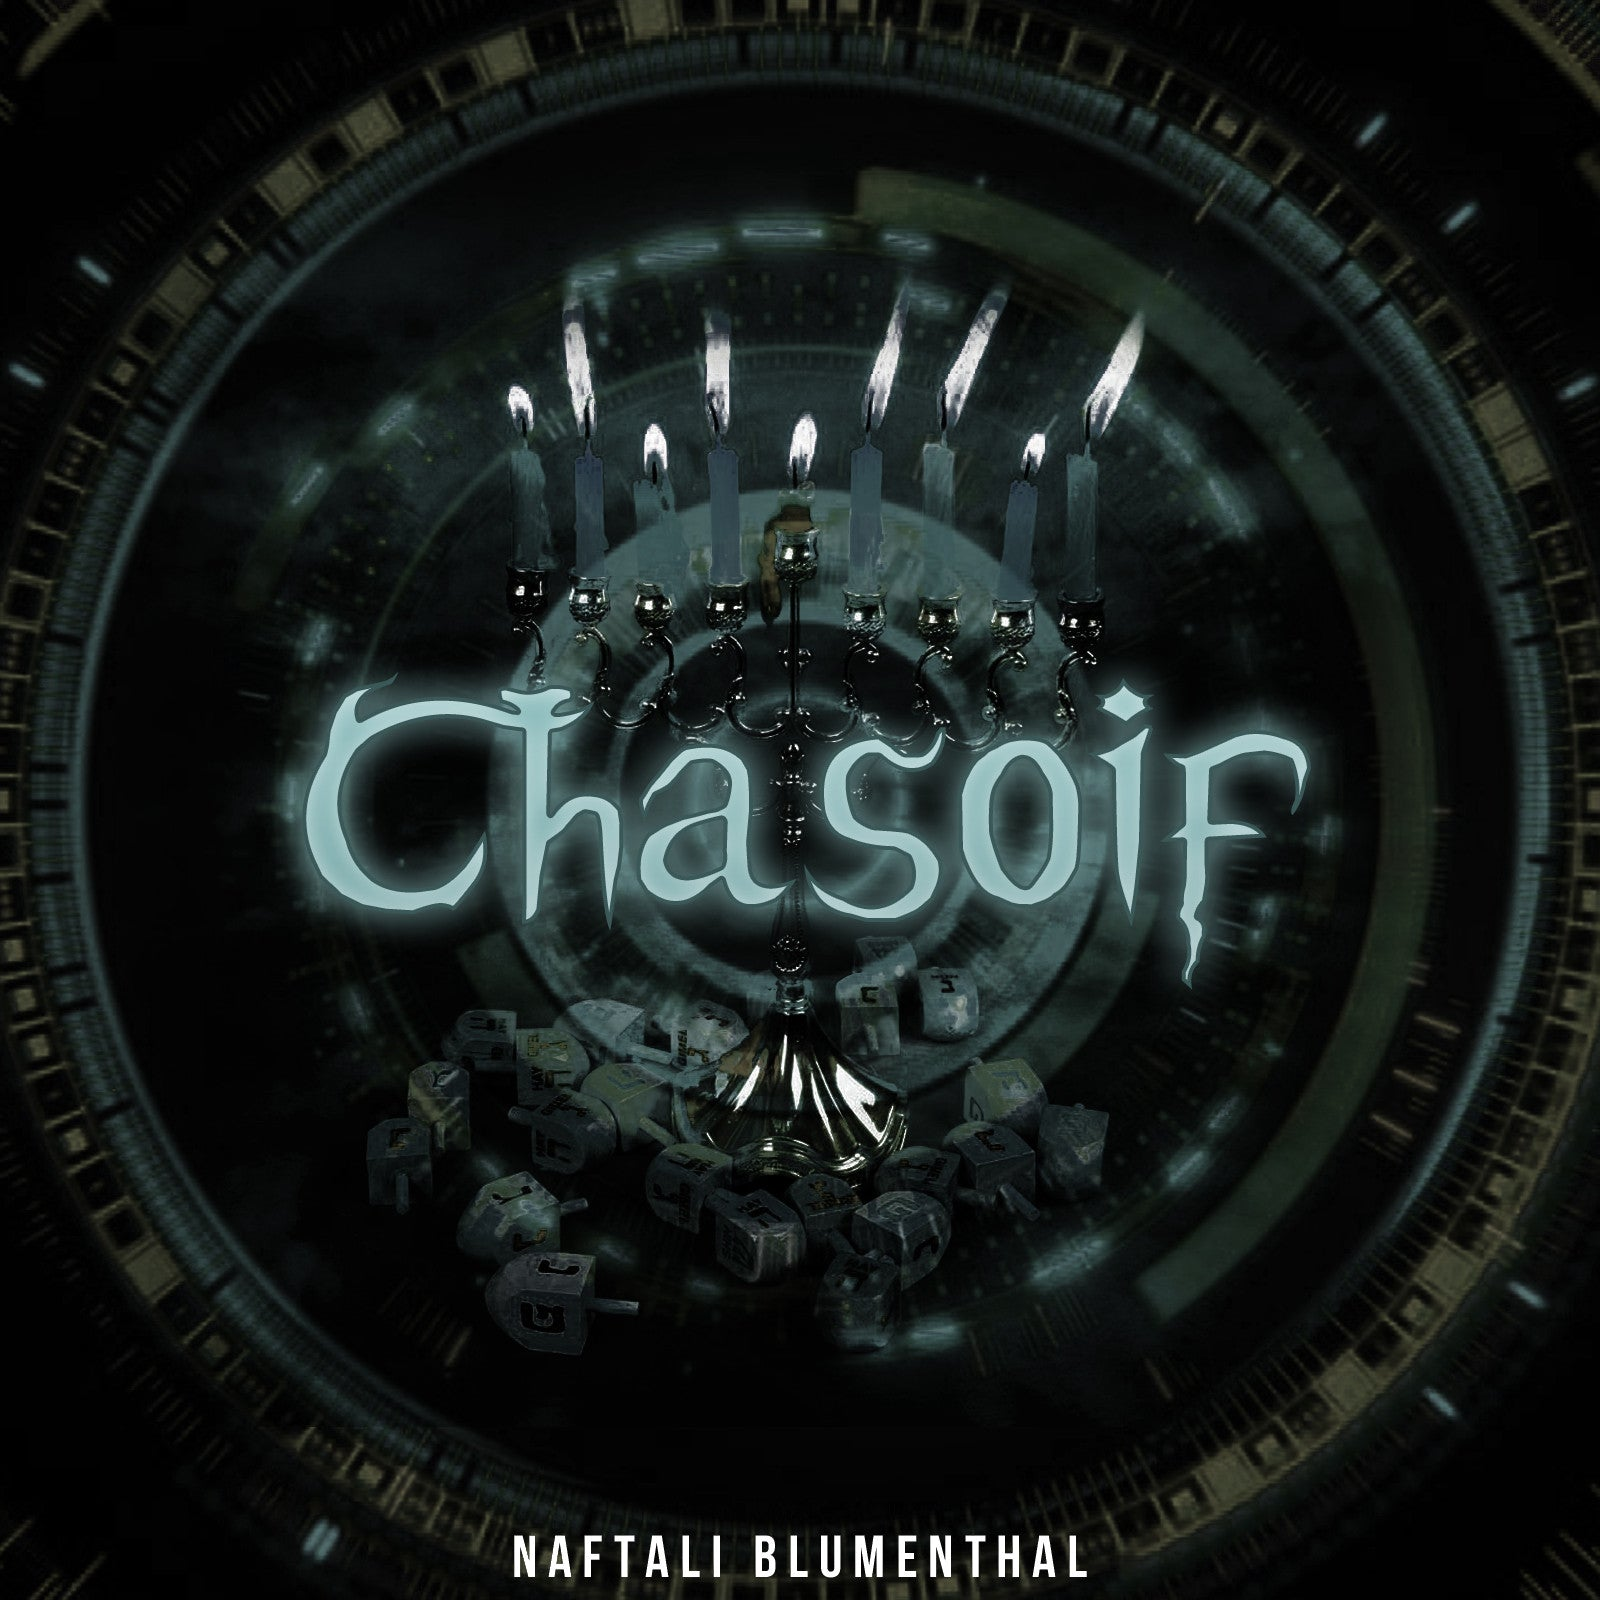 Naftali Blumenthal - Chasoif (Single)